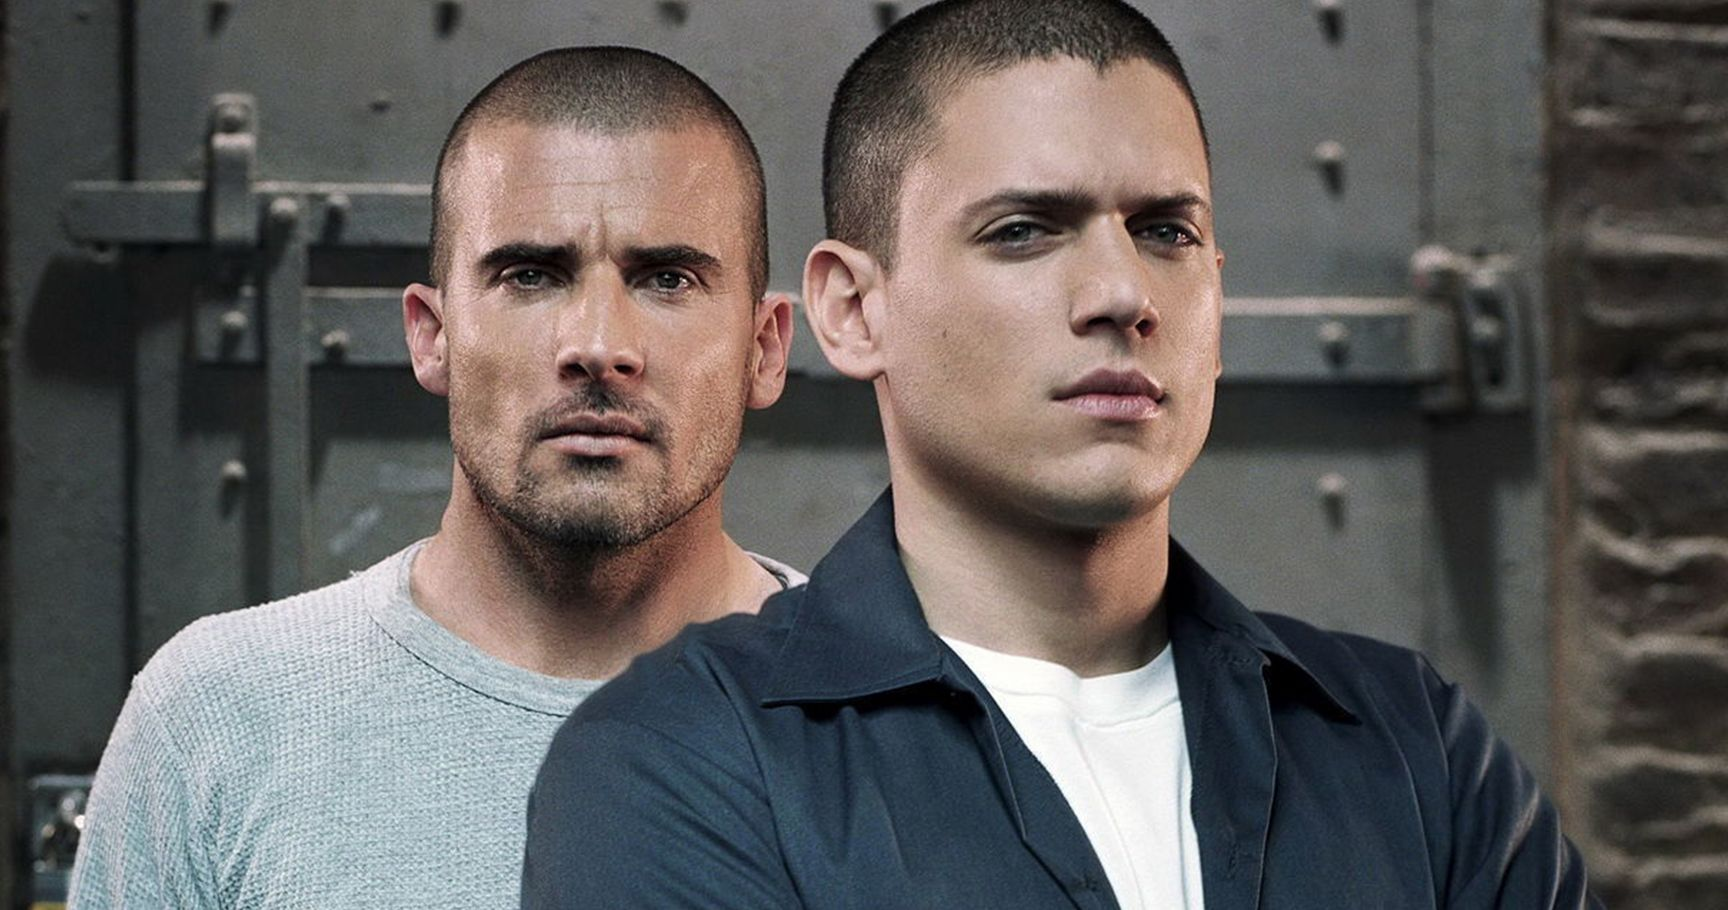 Quiz: How Well Do You Know 'Prison Break'?